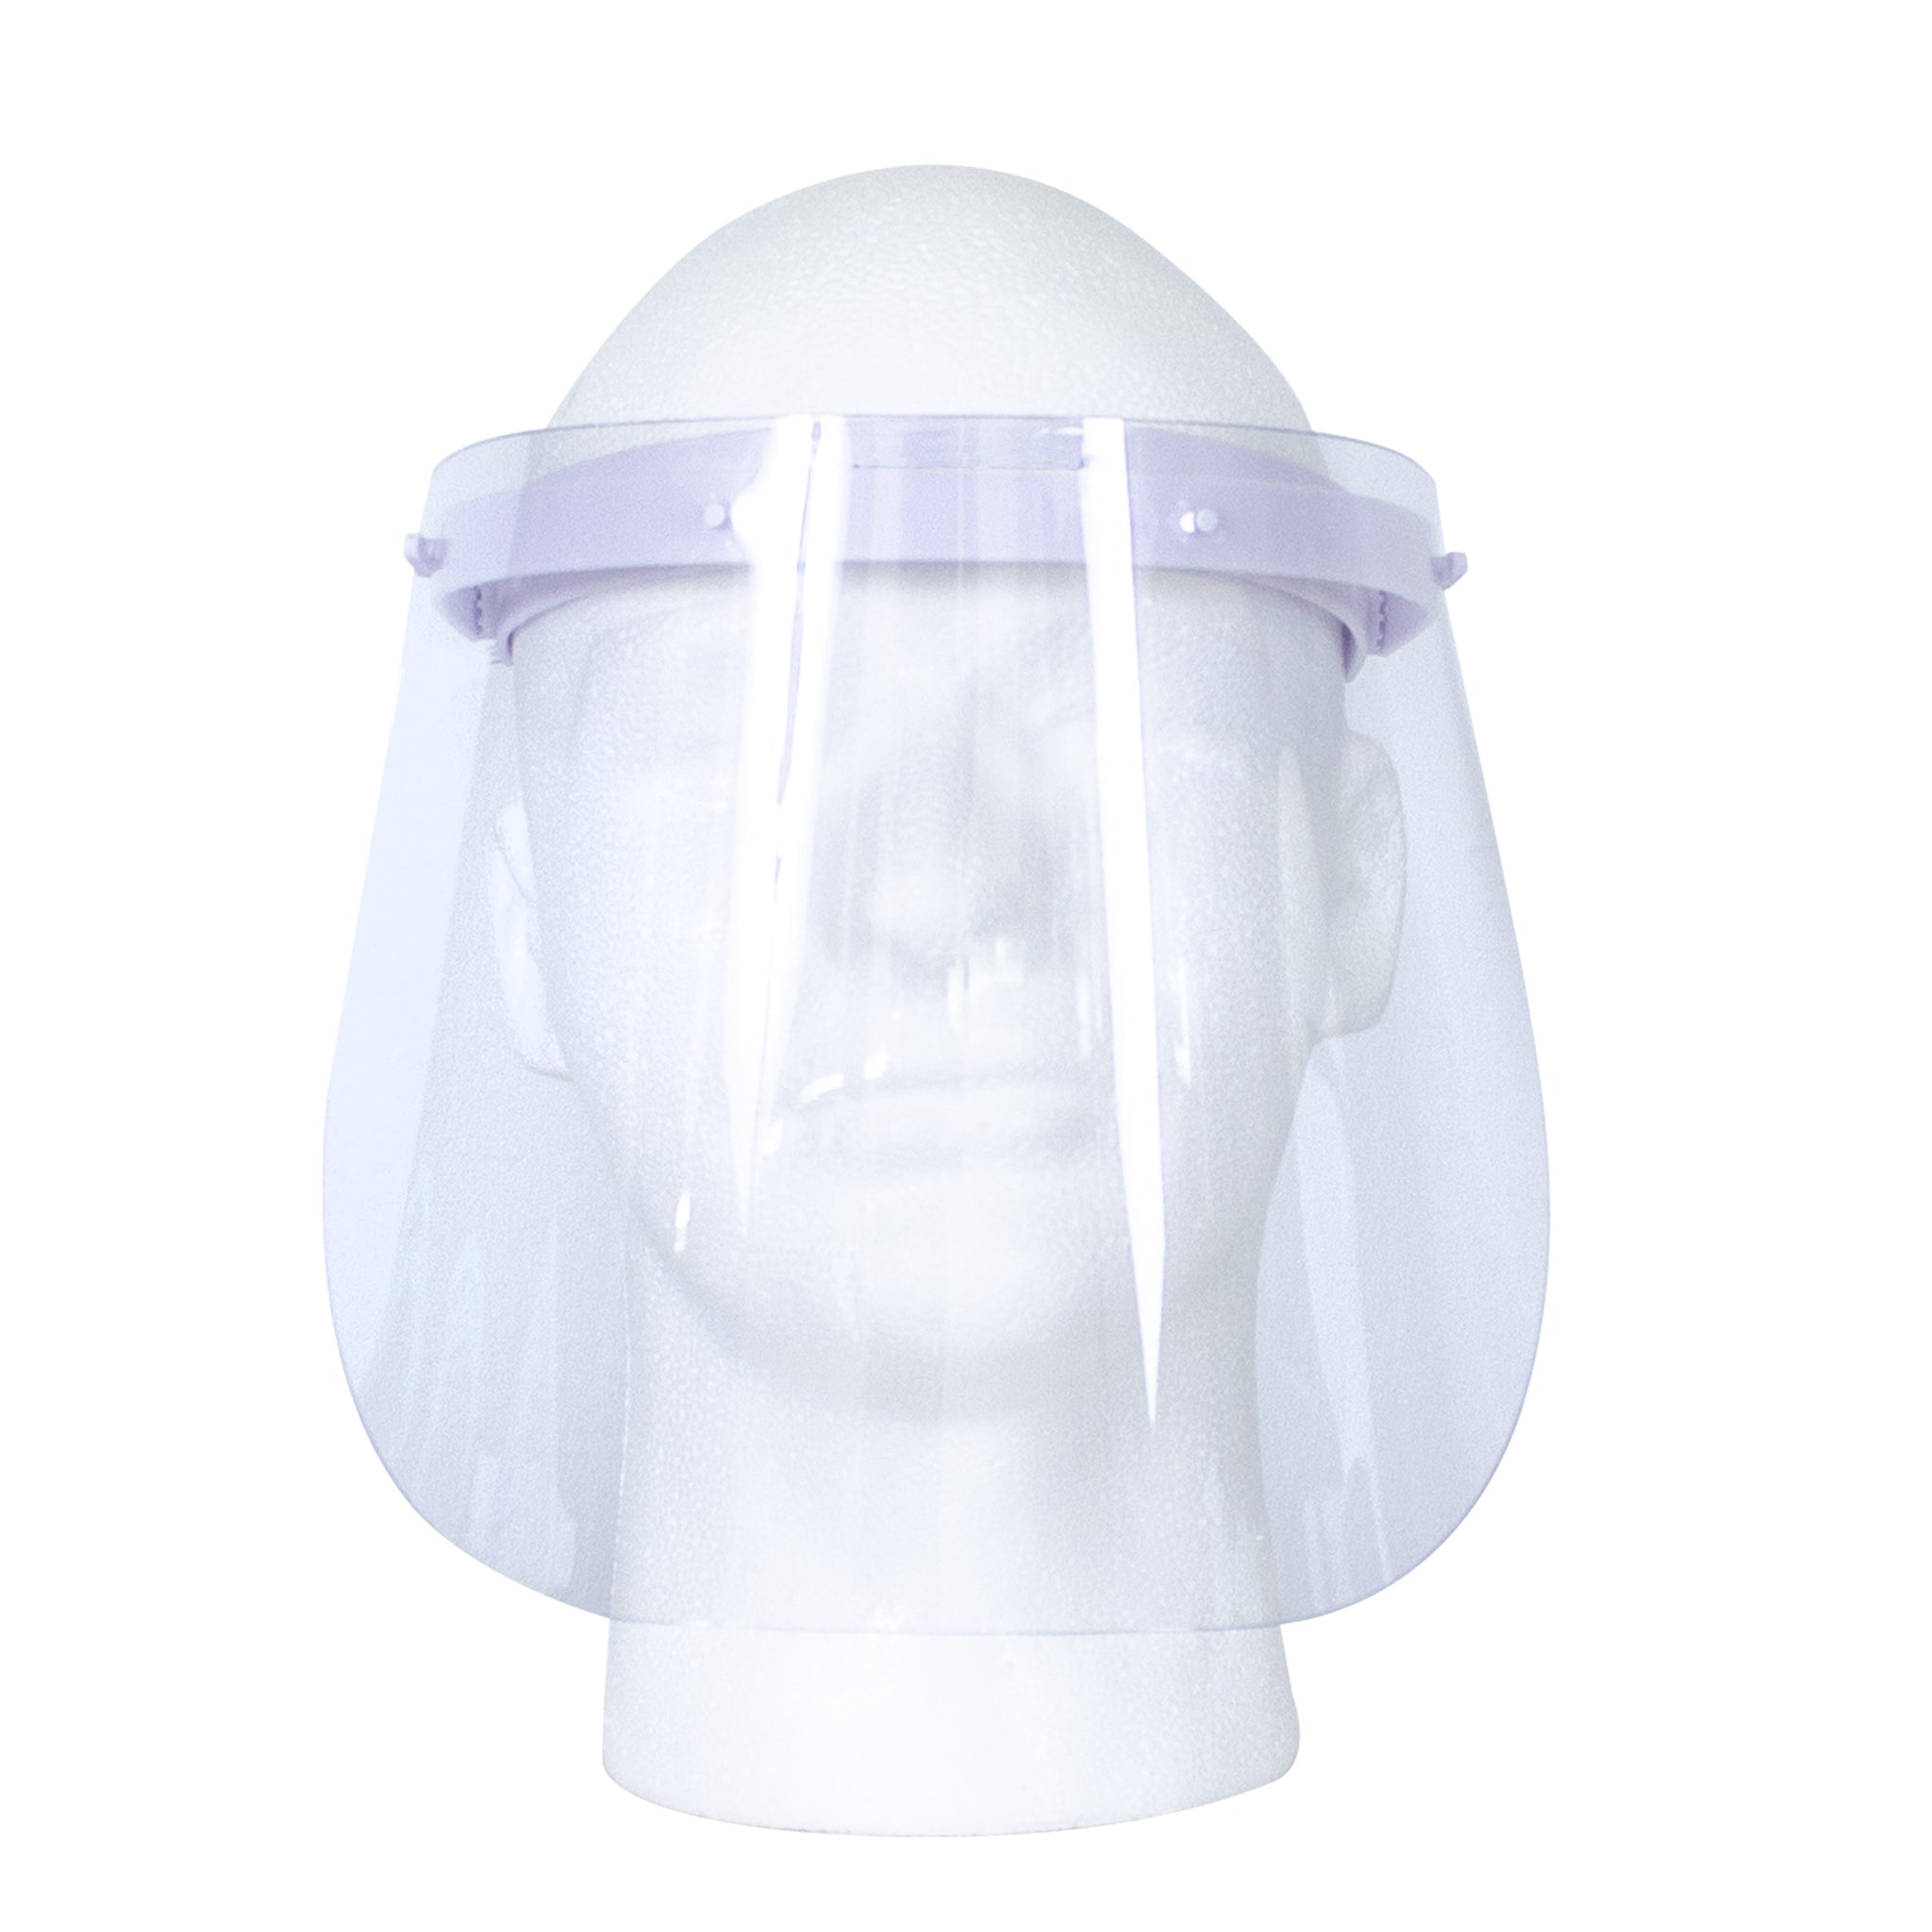 10 Adjustable Protective Face Shield Medium 2 Colors